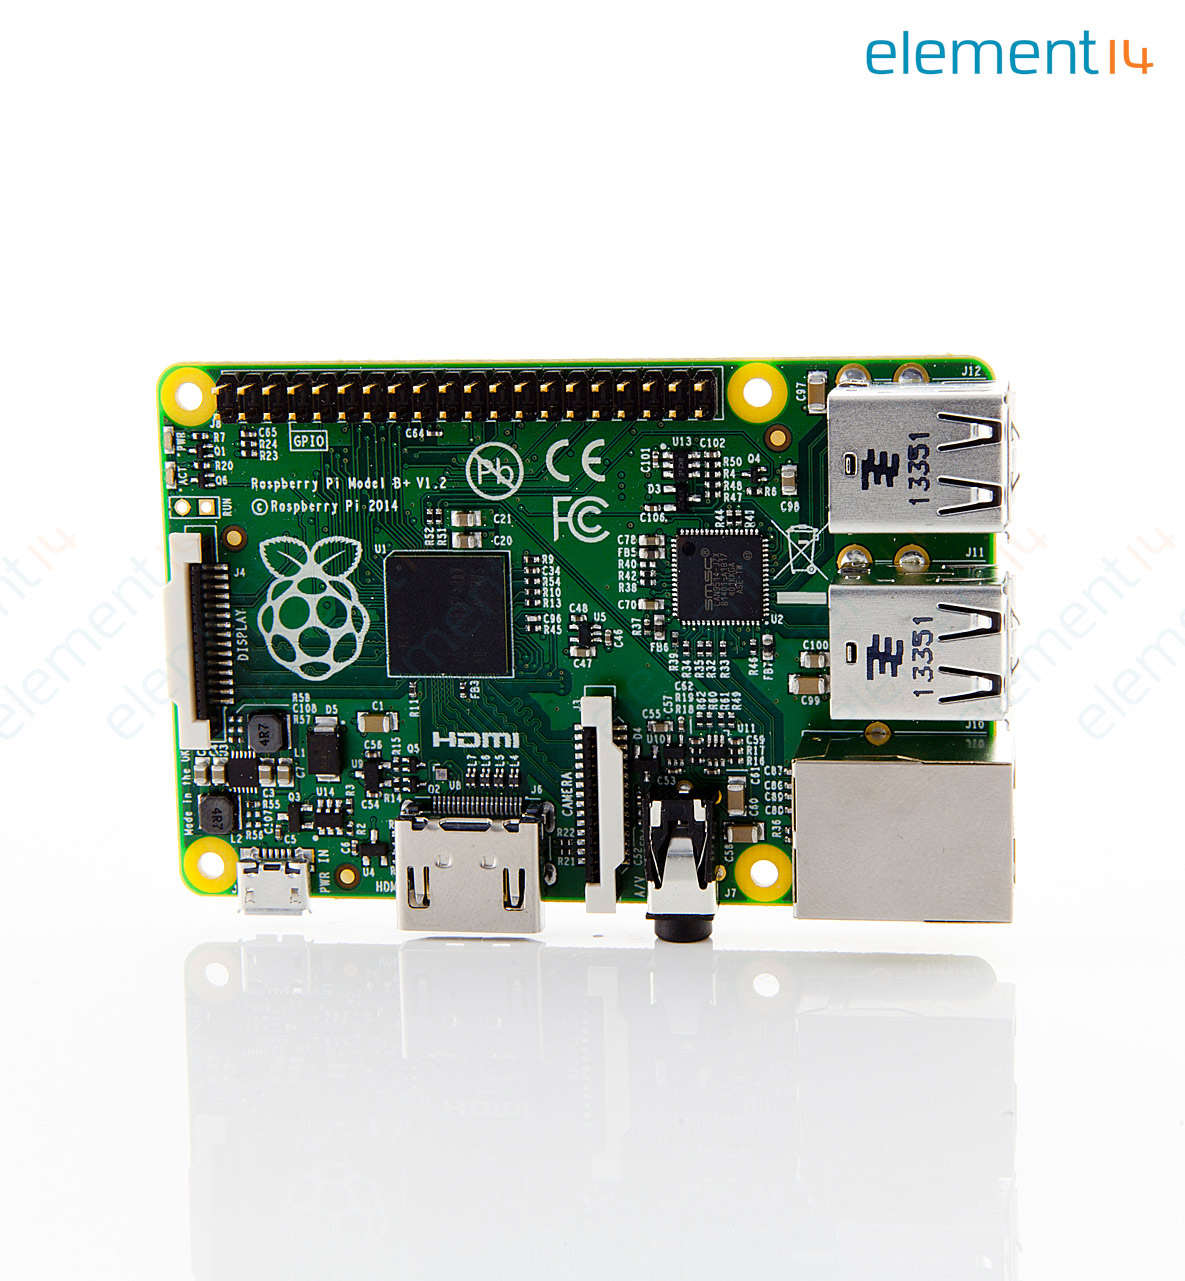 Single Board Computer, Raspberry Pi Model B+, BCM2835 CPU, Plugs Into TV  and Keyboard, 512MB SDRAM